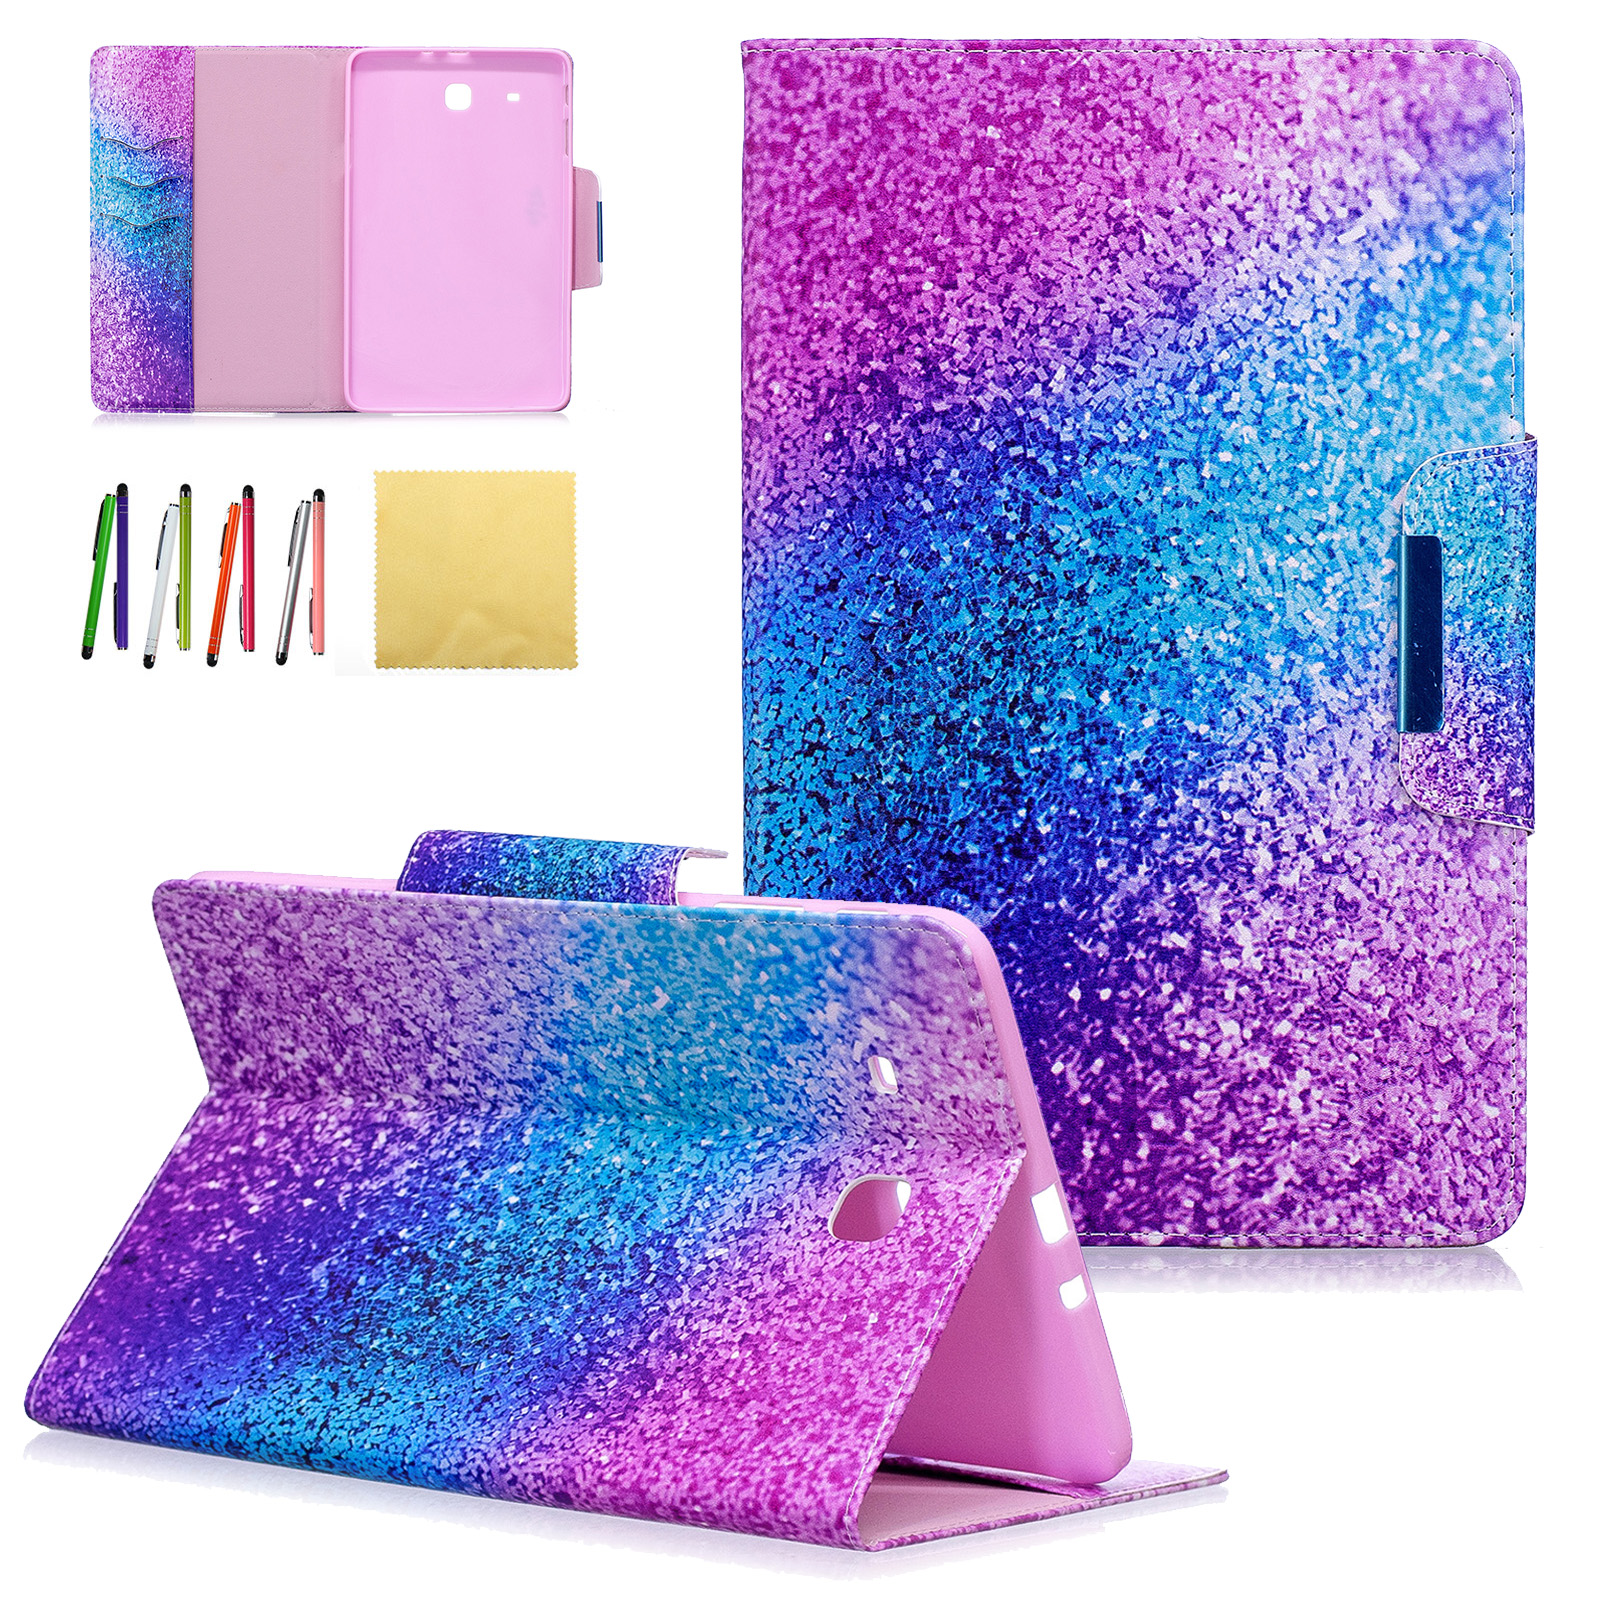 Galaxy Tab E 9.6 Case, Goodest PU Leather Stand Wallet Covers with Card Slots For Samsung Galaxy Tab E Wi-Fi/Tab E Nook 9.6-inch Tablet(SM-T560/T561/T565 & SM-T567V)(Not Fit T560NU), Colorful Sand